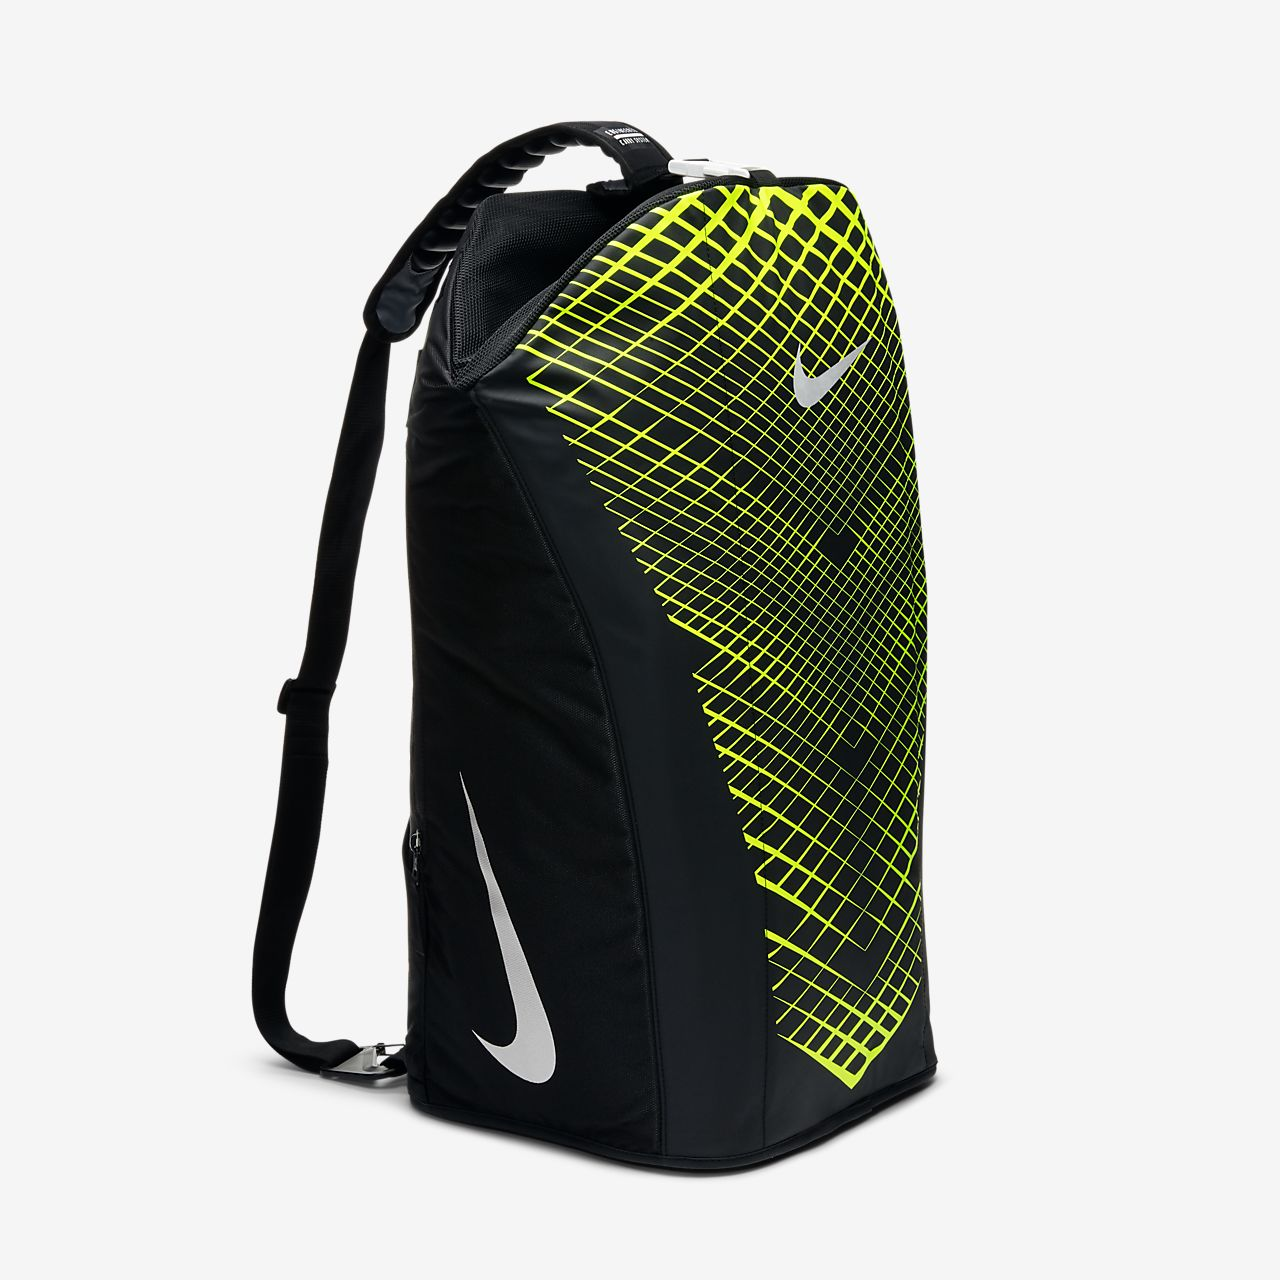 7e352bb3d2 Nike Vapor Max Air (Medium) Training Duffel Bag. Nike.com MY